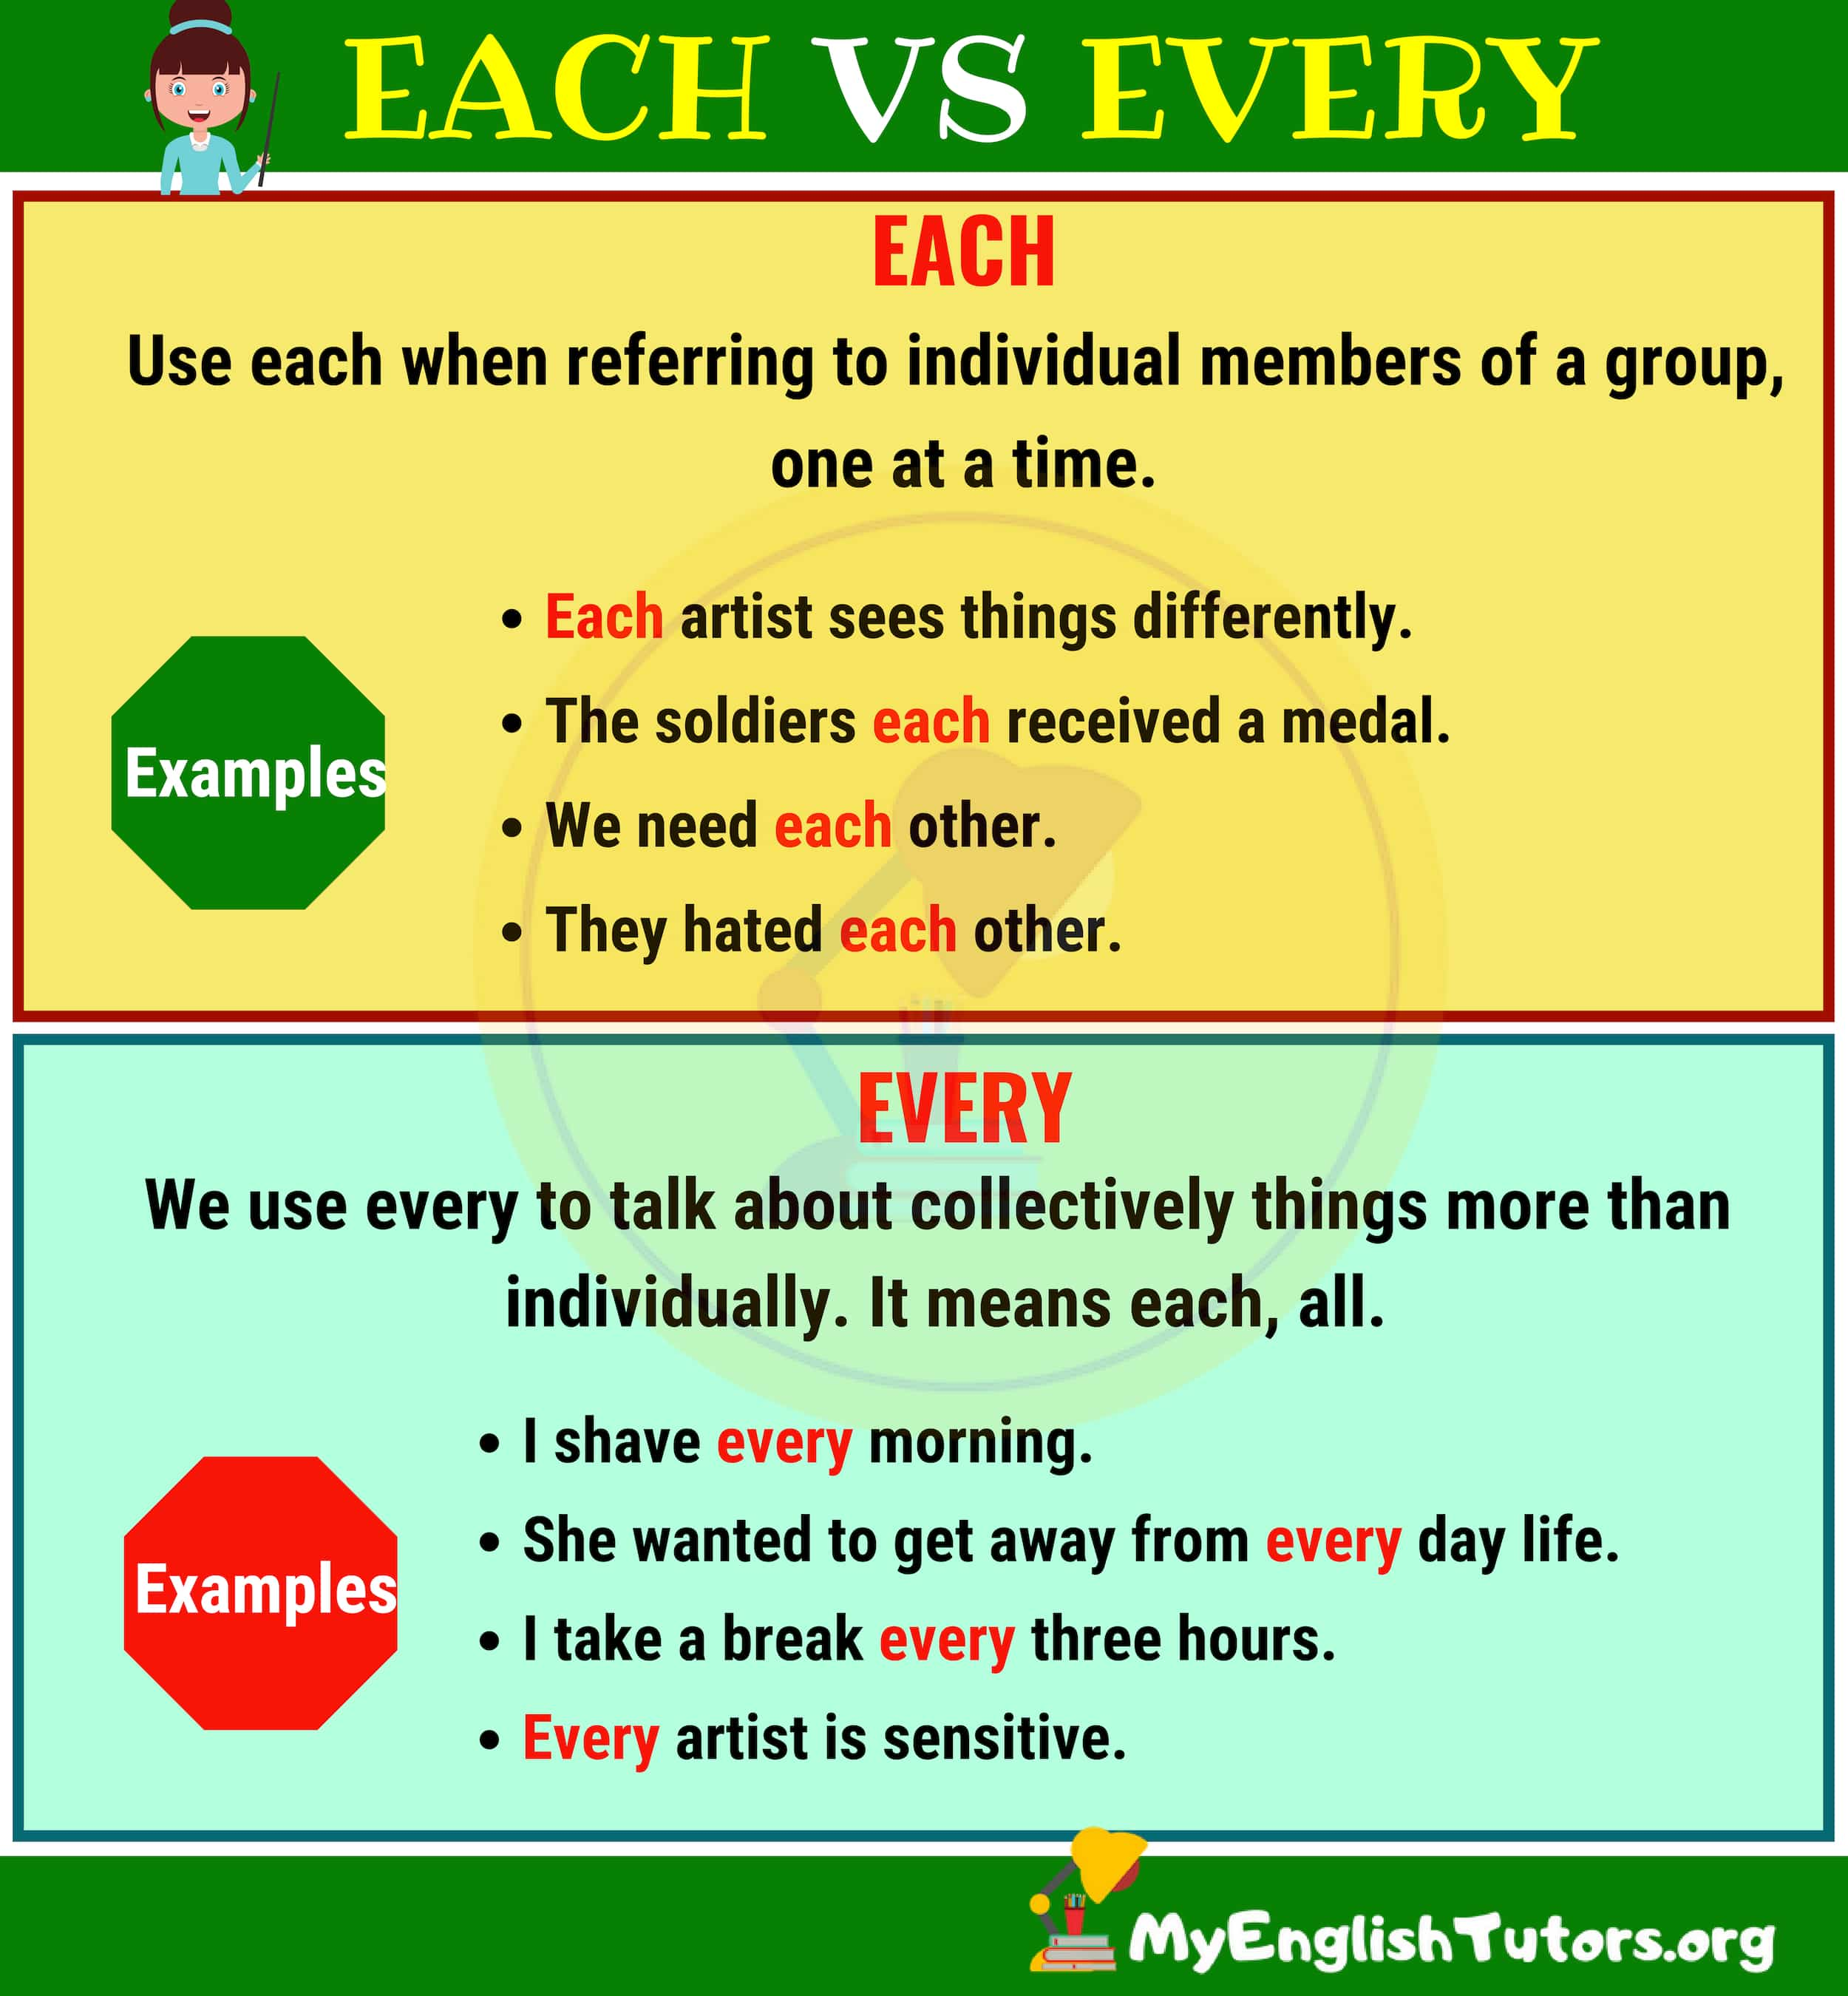 EACH vs EVERY : What are the Differences?